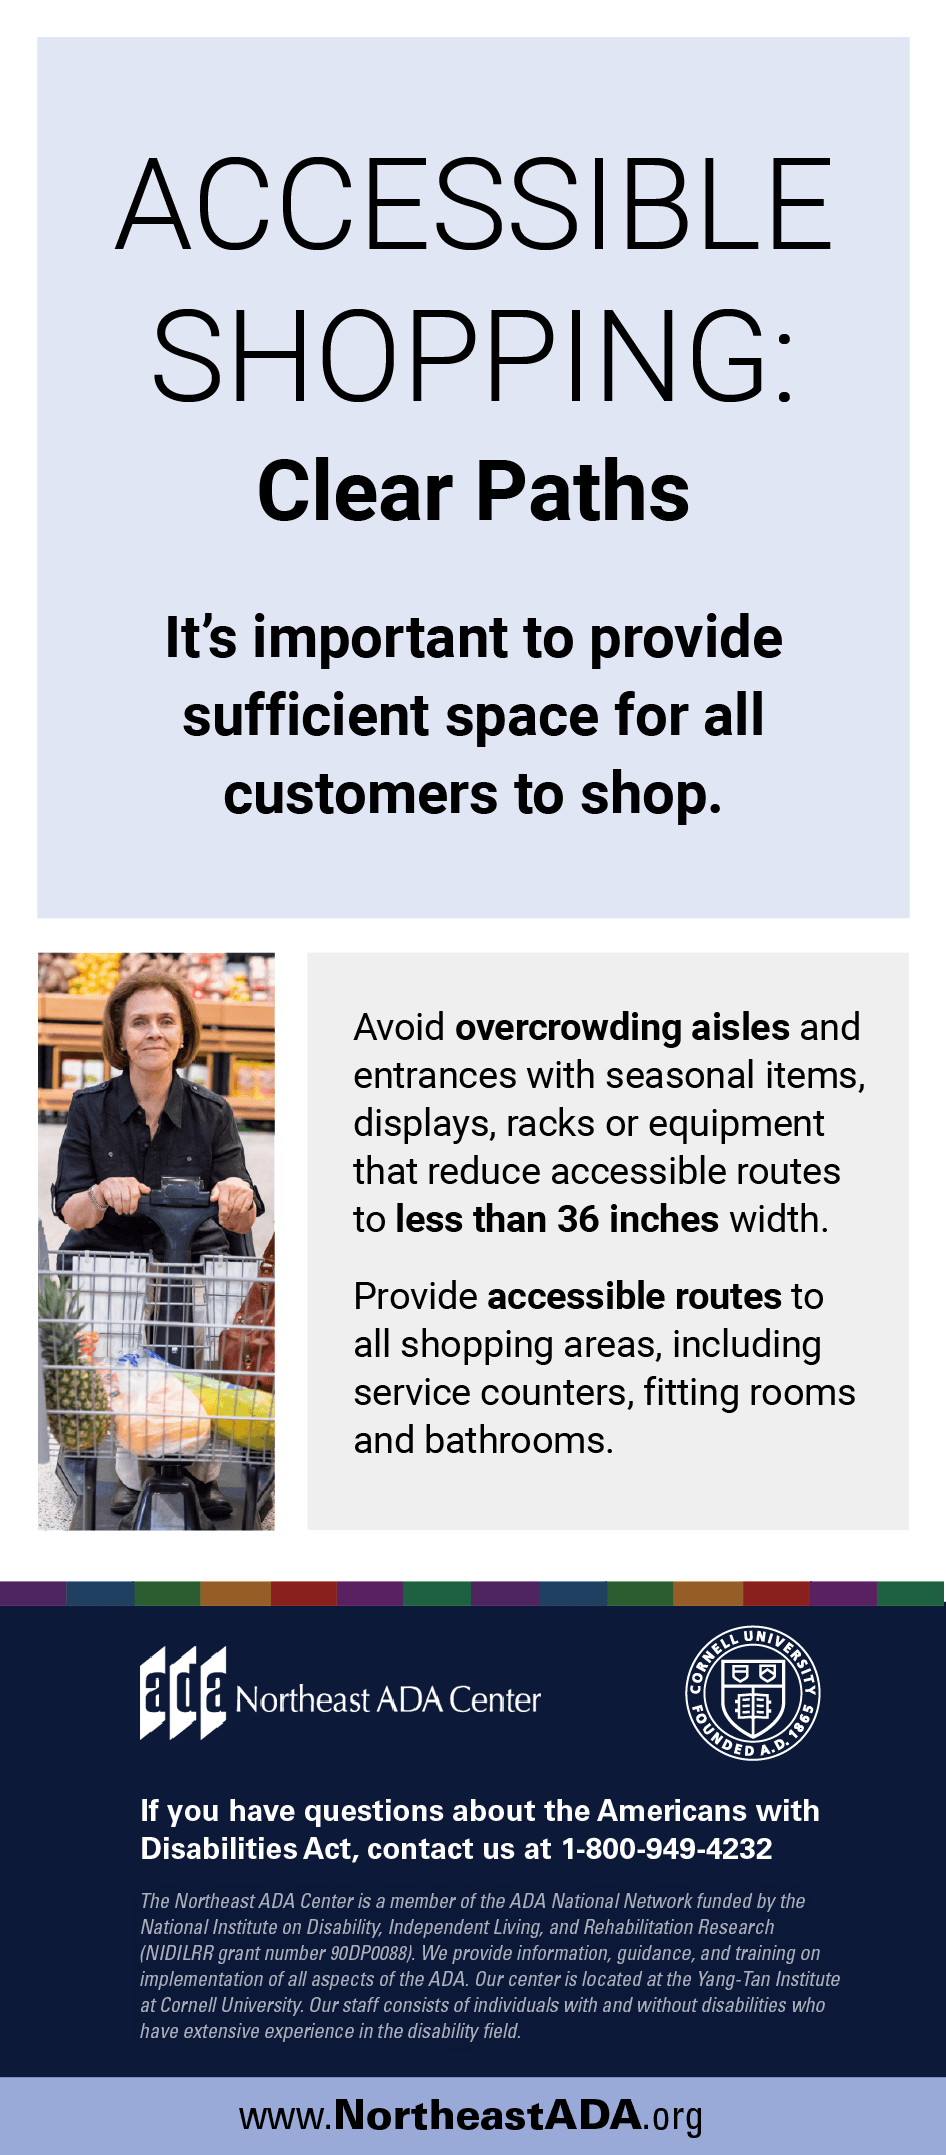 Infographic titled 'Accessible Shopping: Clear Paths' featuring a photo of a woman using a motorized shopping cart in a supermarket.